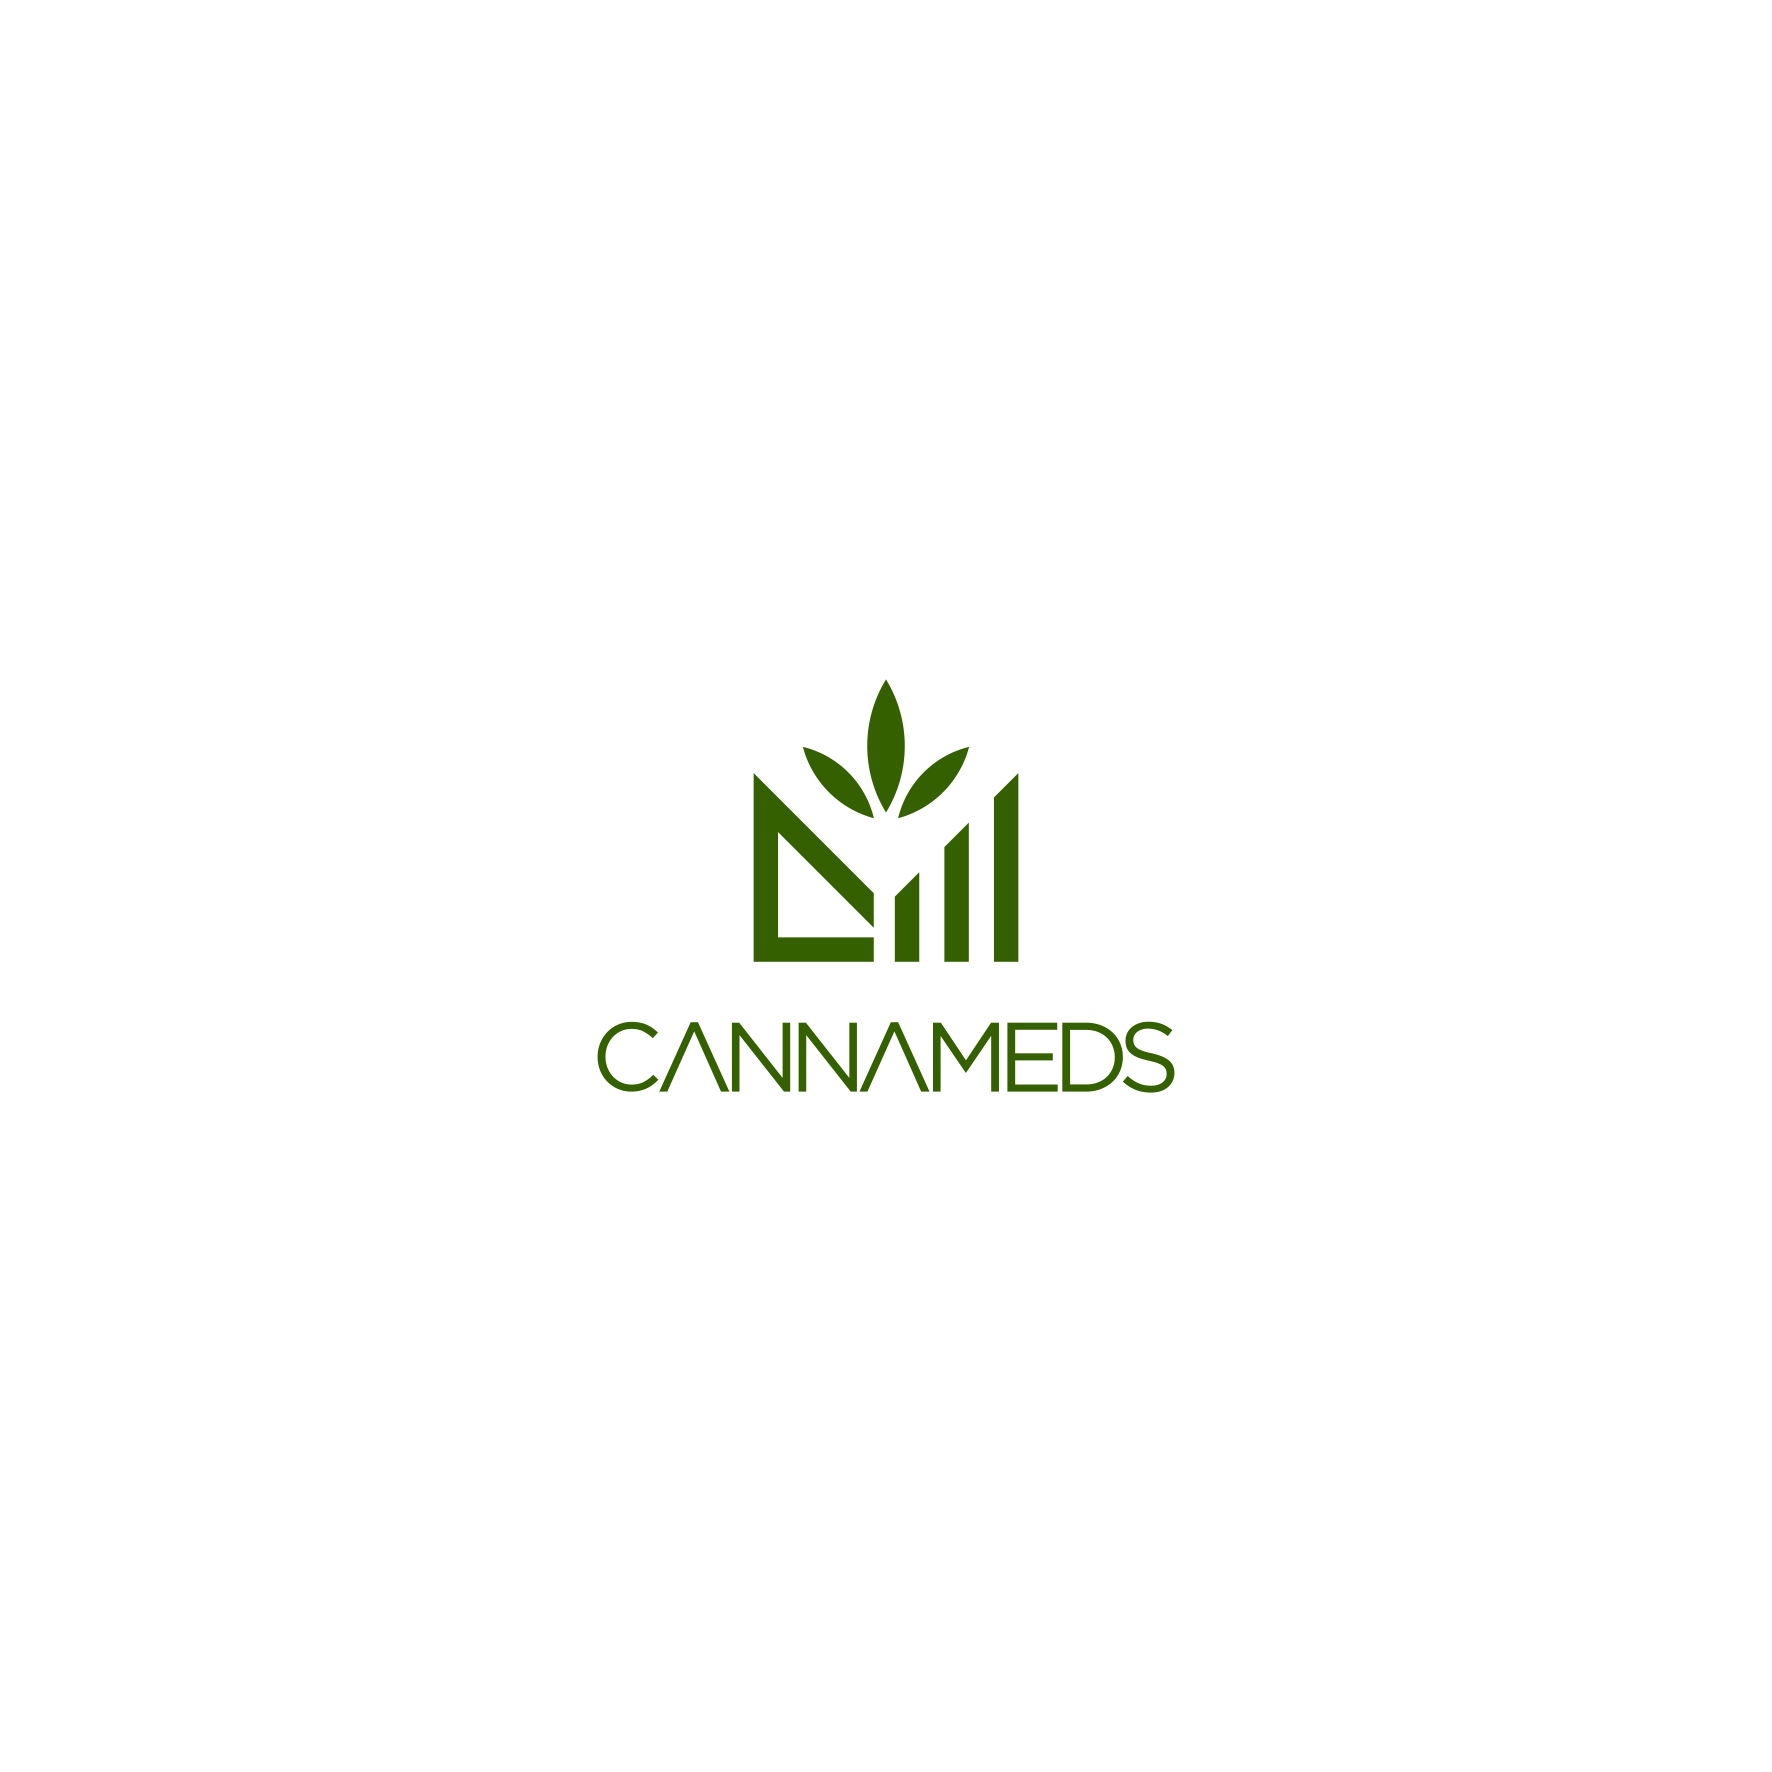 CBD Brand looking for an instantly recognizable Logo Design